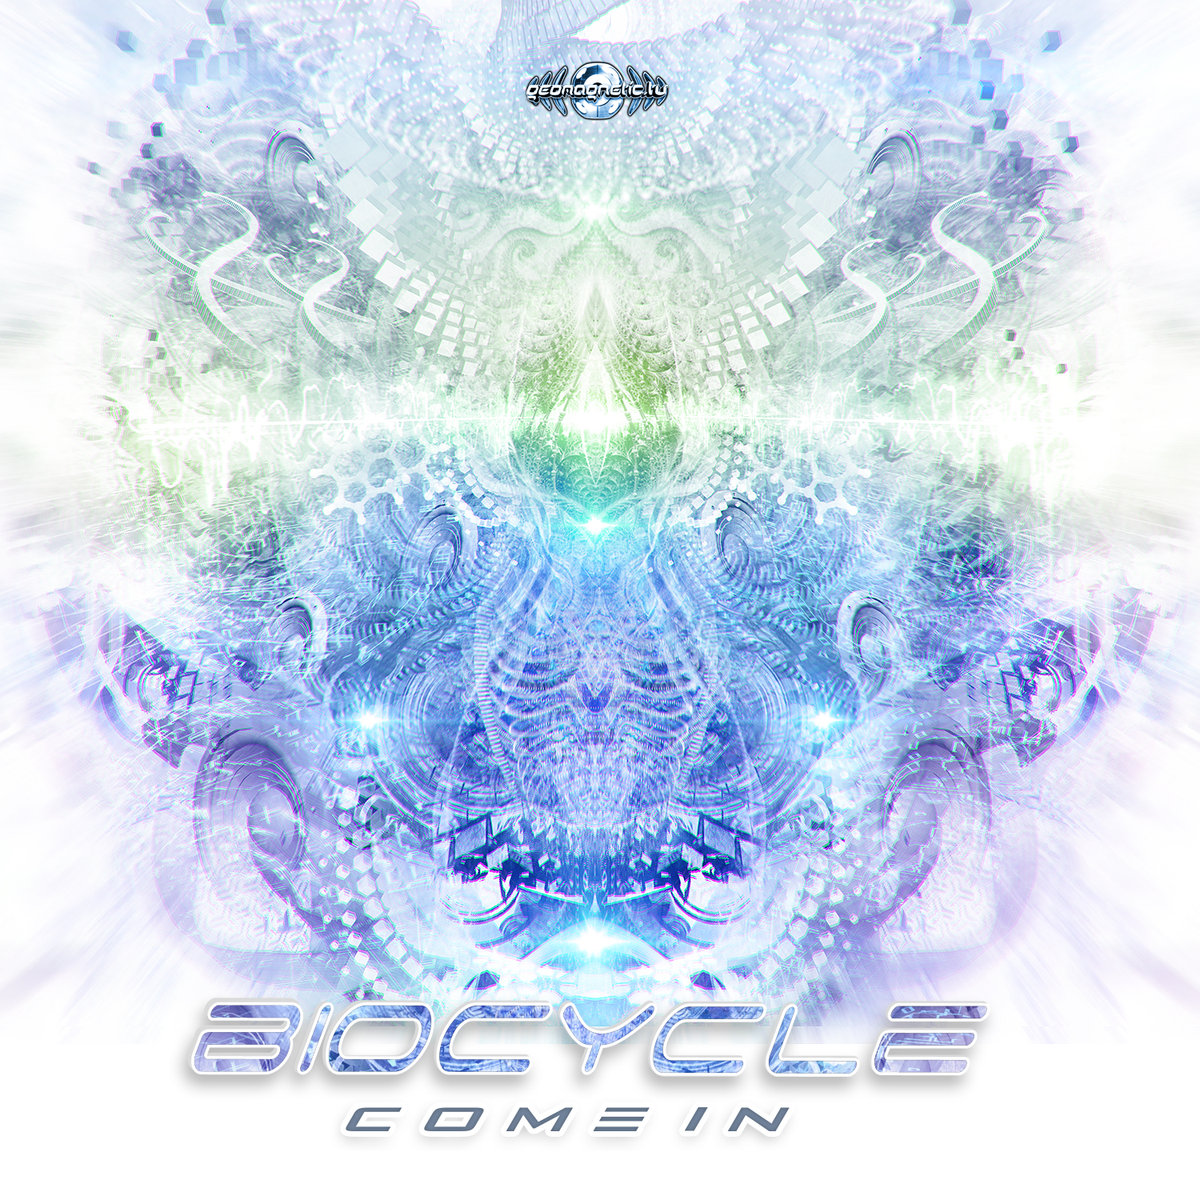 Biocycle - Link Blink @ 'Come In' album (electronic, geomagnetic)